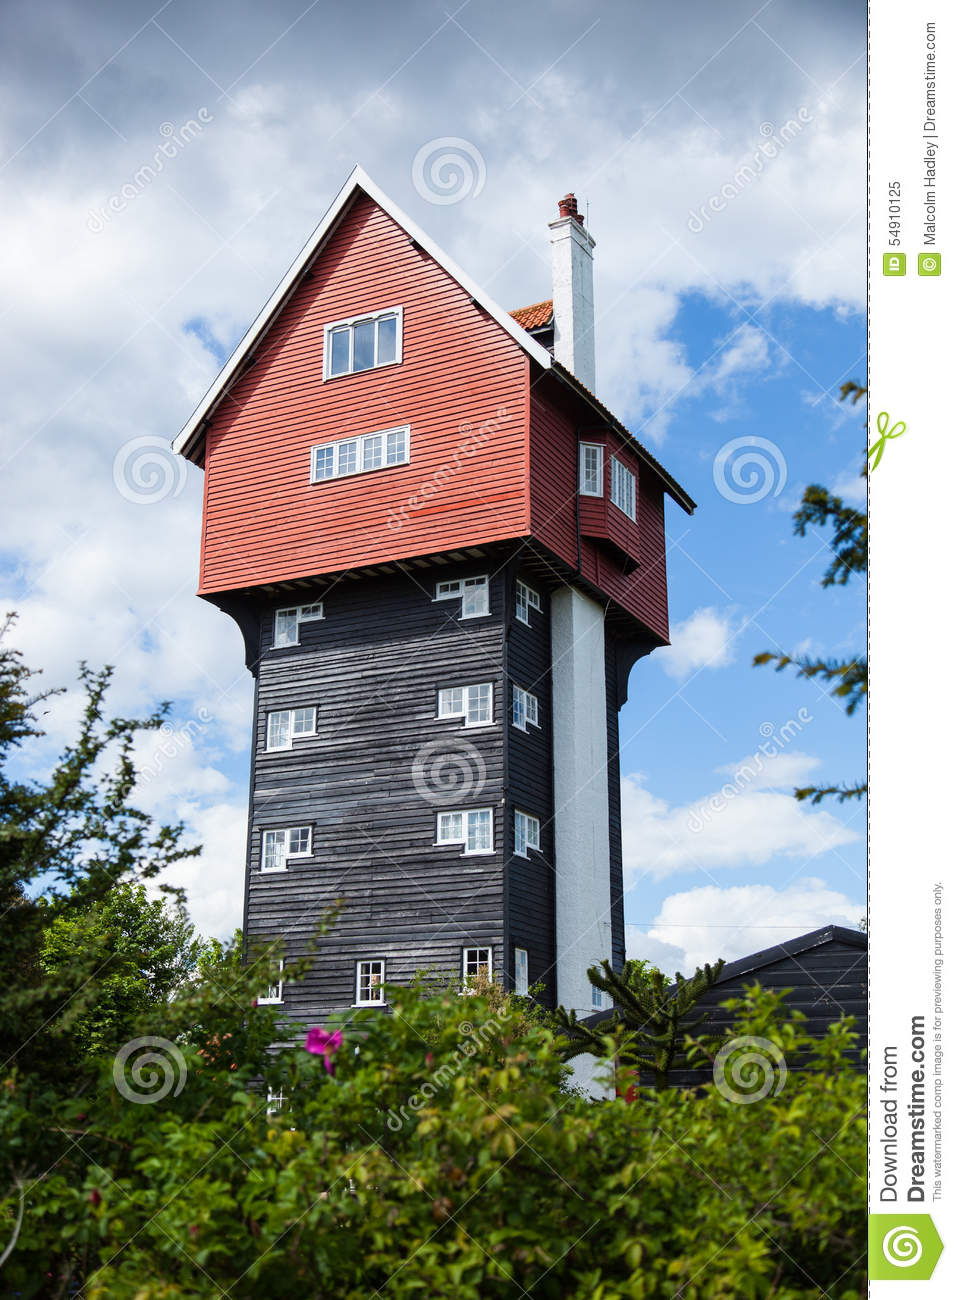 The House In The Clouds, Thorpeness, Suffolk, England Stock Photo.